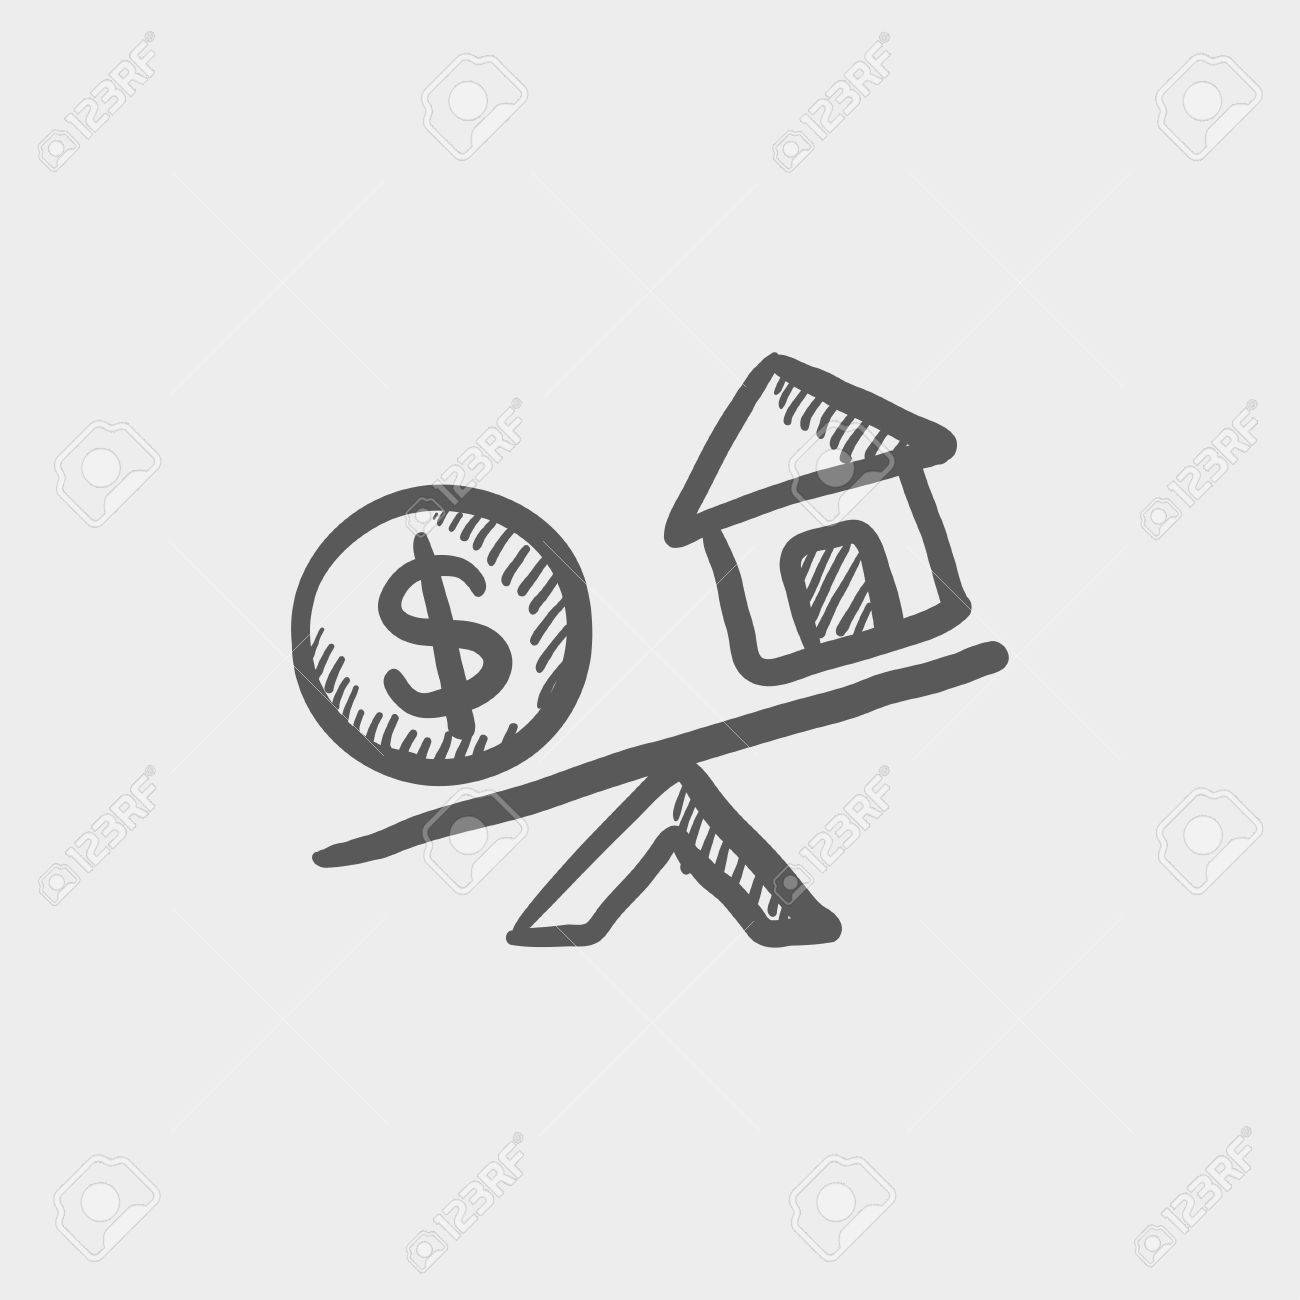 Compare or exchange home to money sketch icon for web and mobile